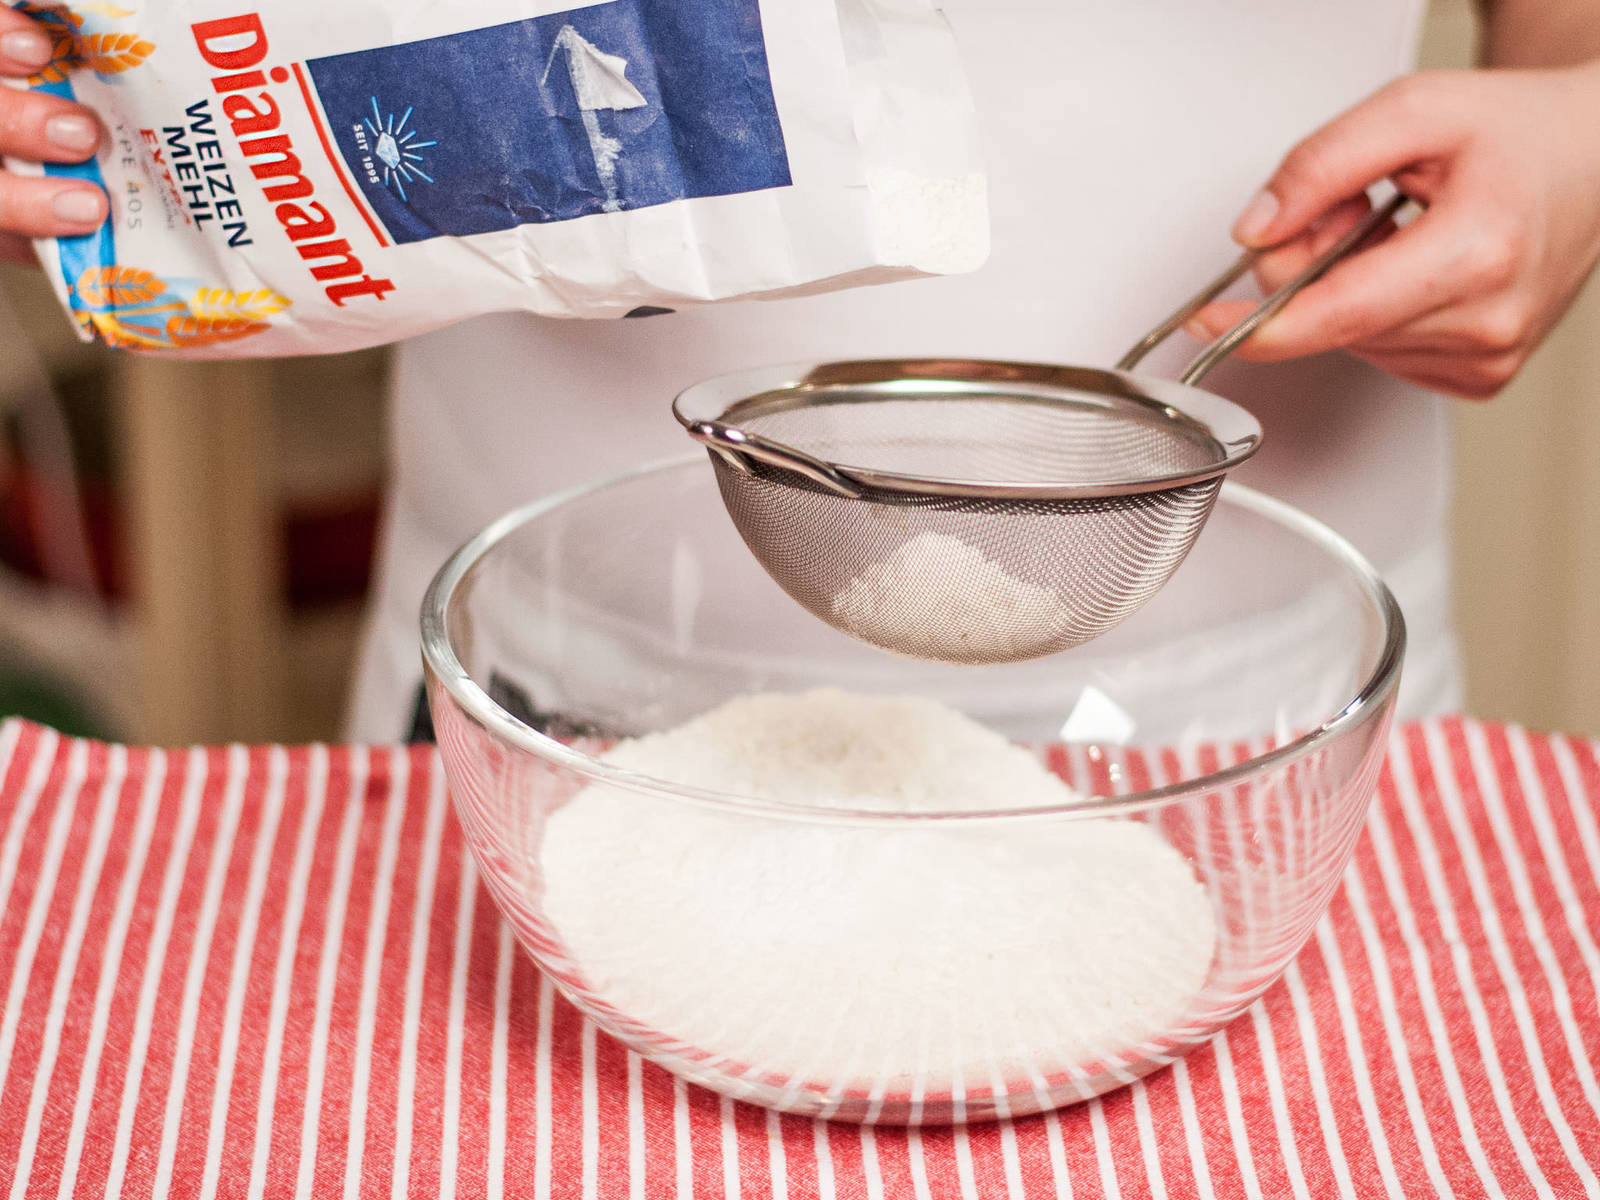 Preheat oven to 180°C/350°F. In a bowl, mix flour, baking soda, and salt.